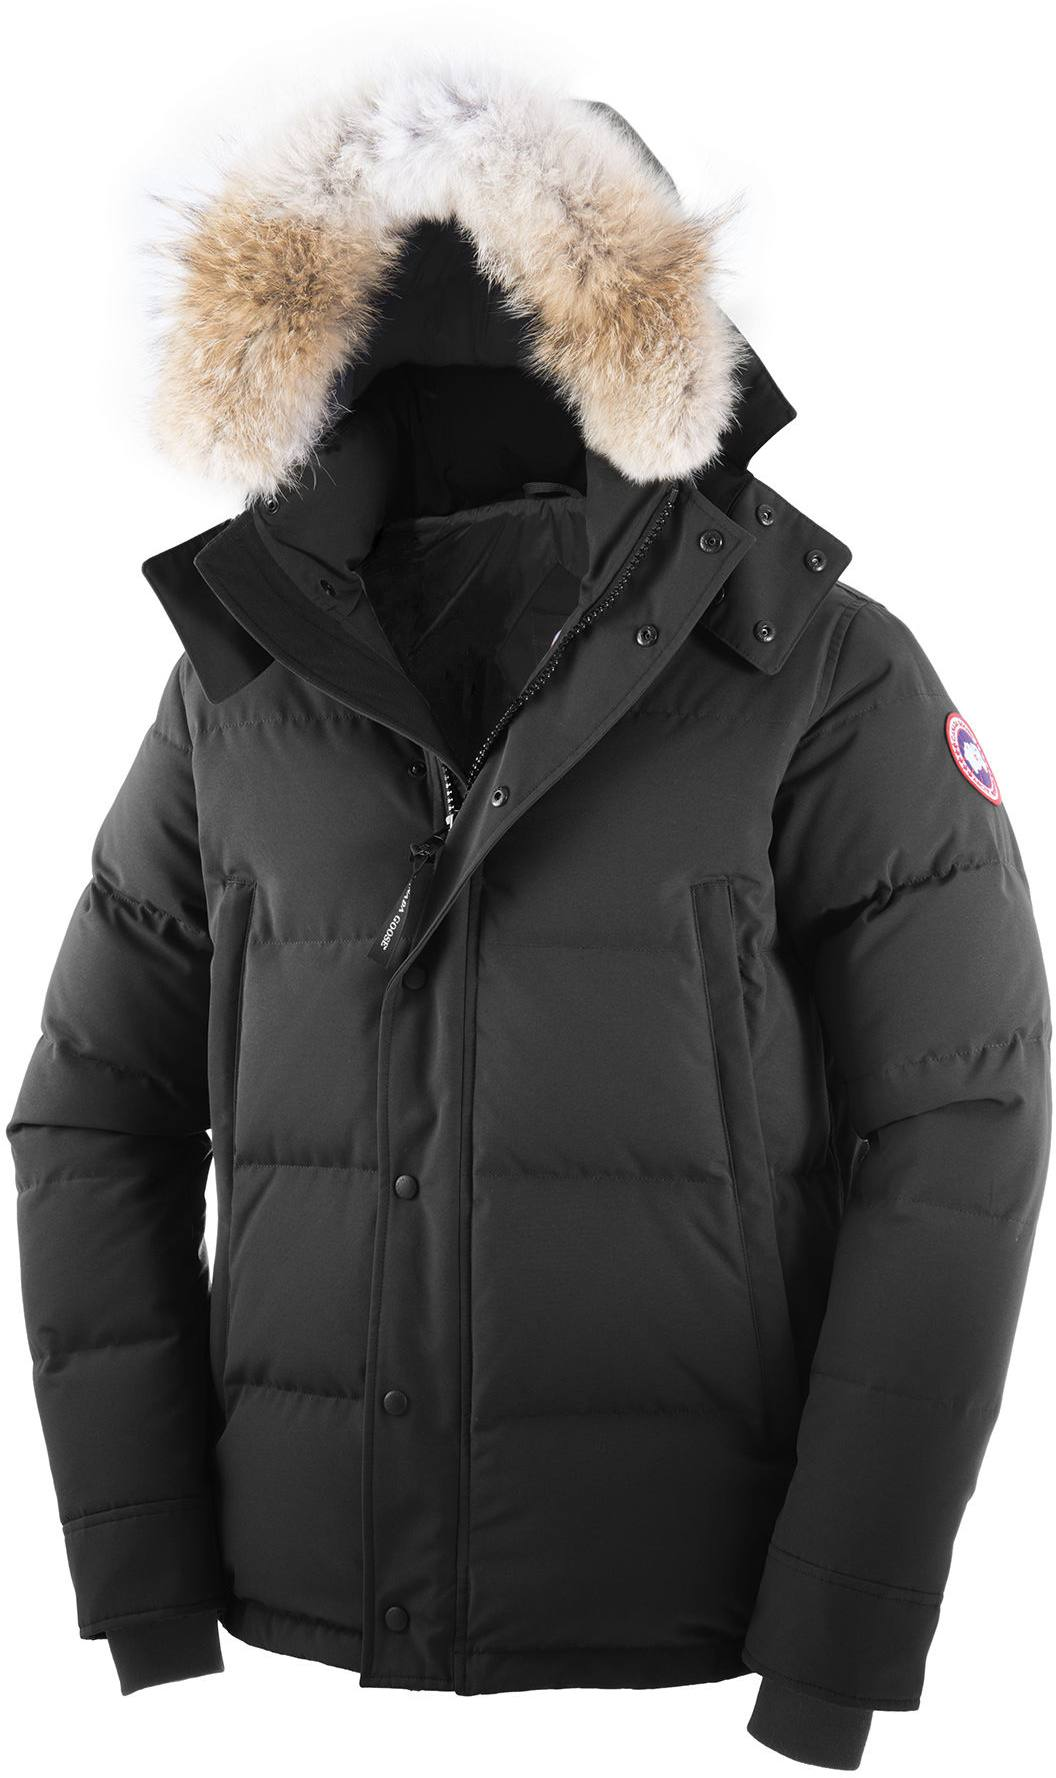 Canada Goose mens outlet discounts - Canada Goose Wyndham Parka | Winter jackets and parkas | Outdoor ...